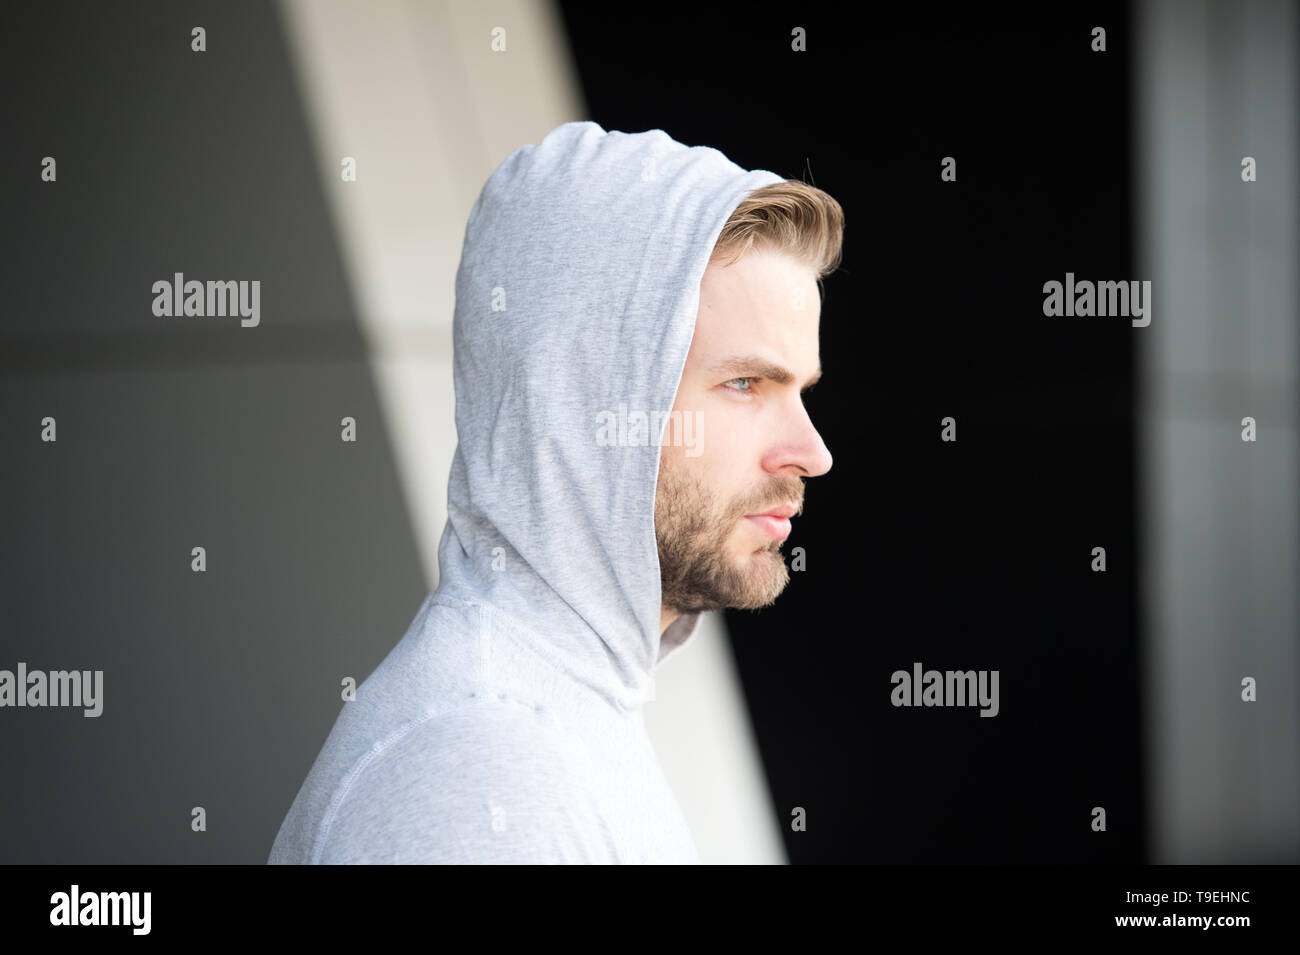 Guy bearded and attractive hooded, side view Man with bristle serious face, urban background, defocused. Needs to stay alone. Man beard unshaven guy l - Stock Image